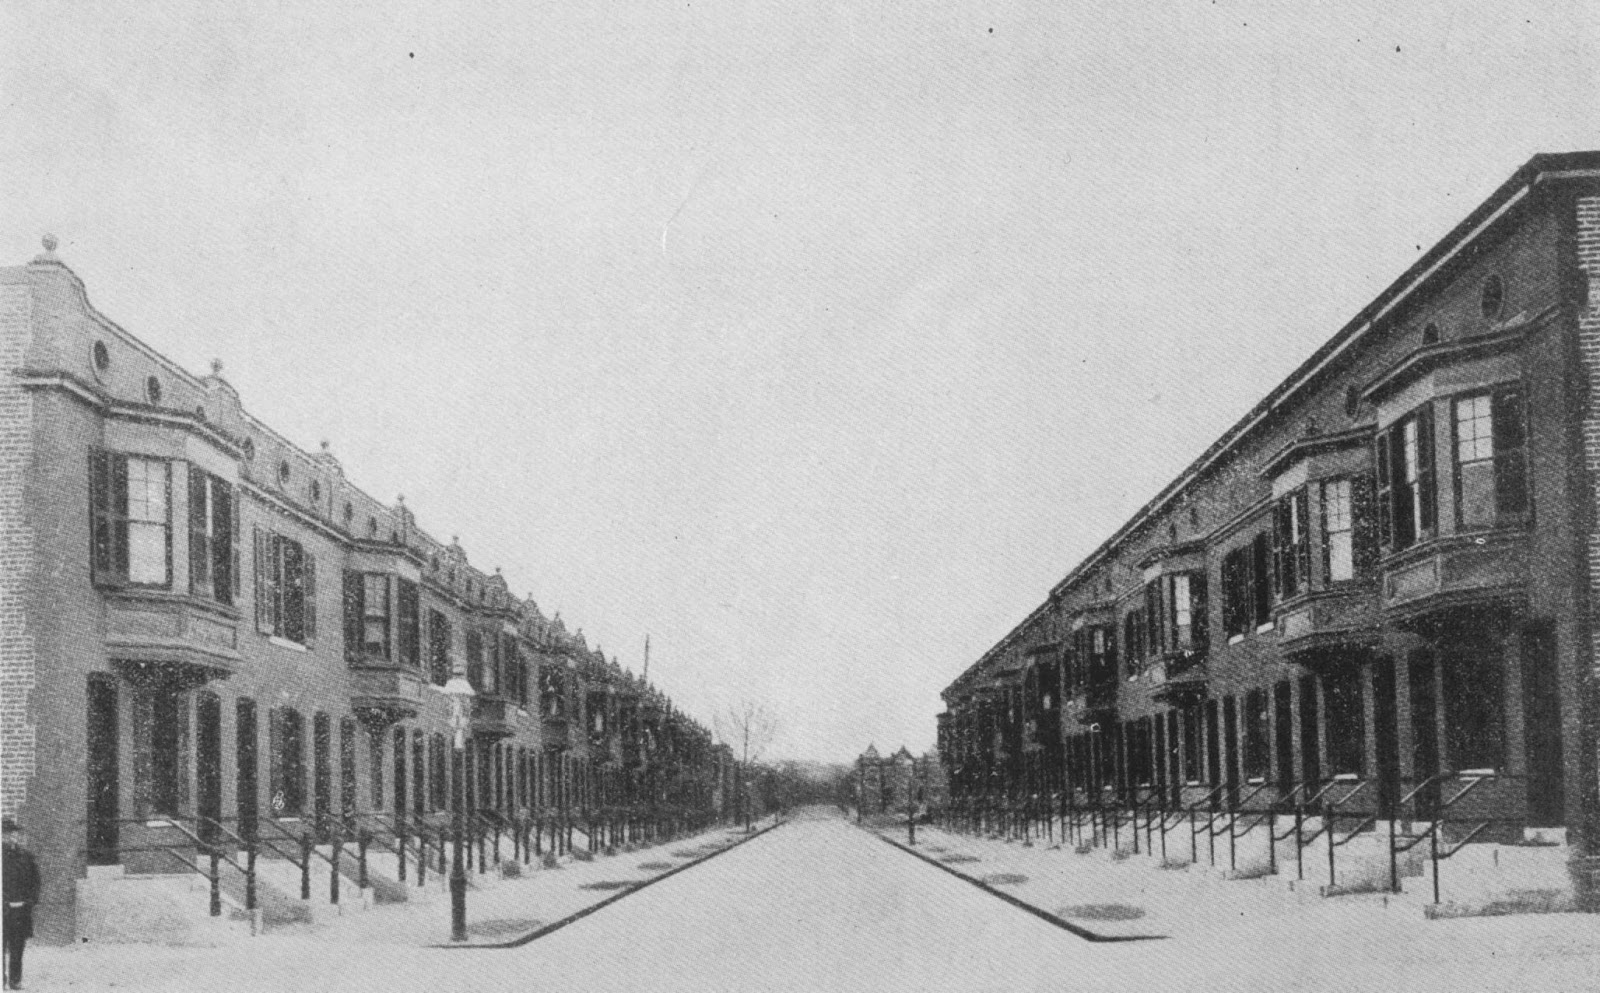 Sanitary Improvement Co Builds Bates St NW In 1902